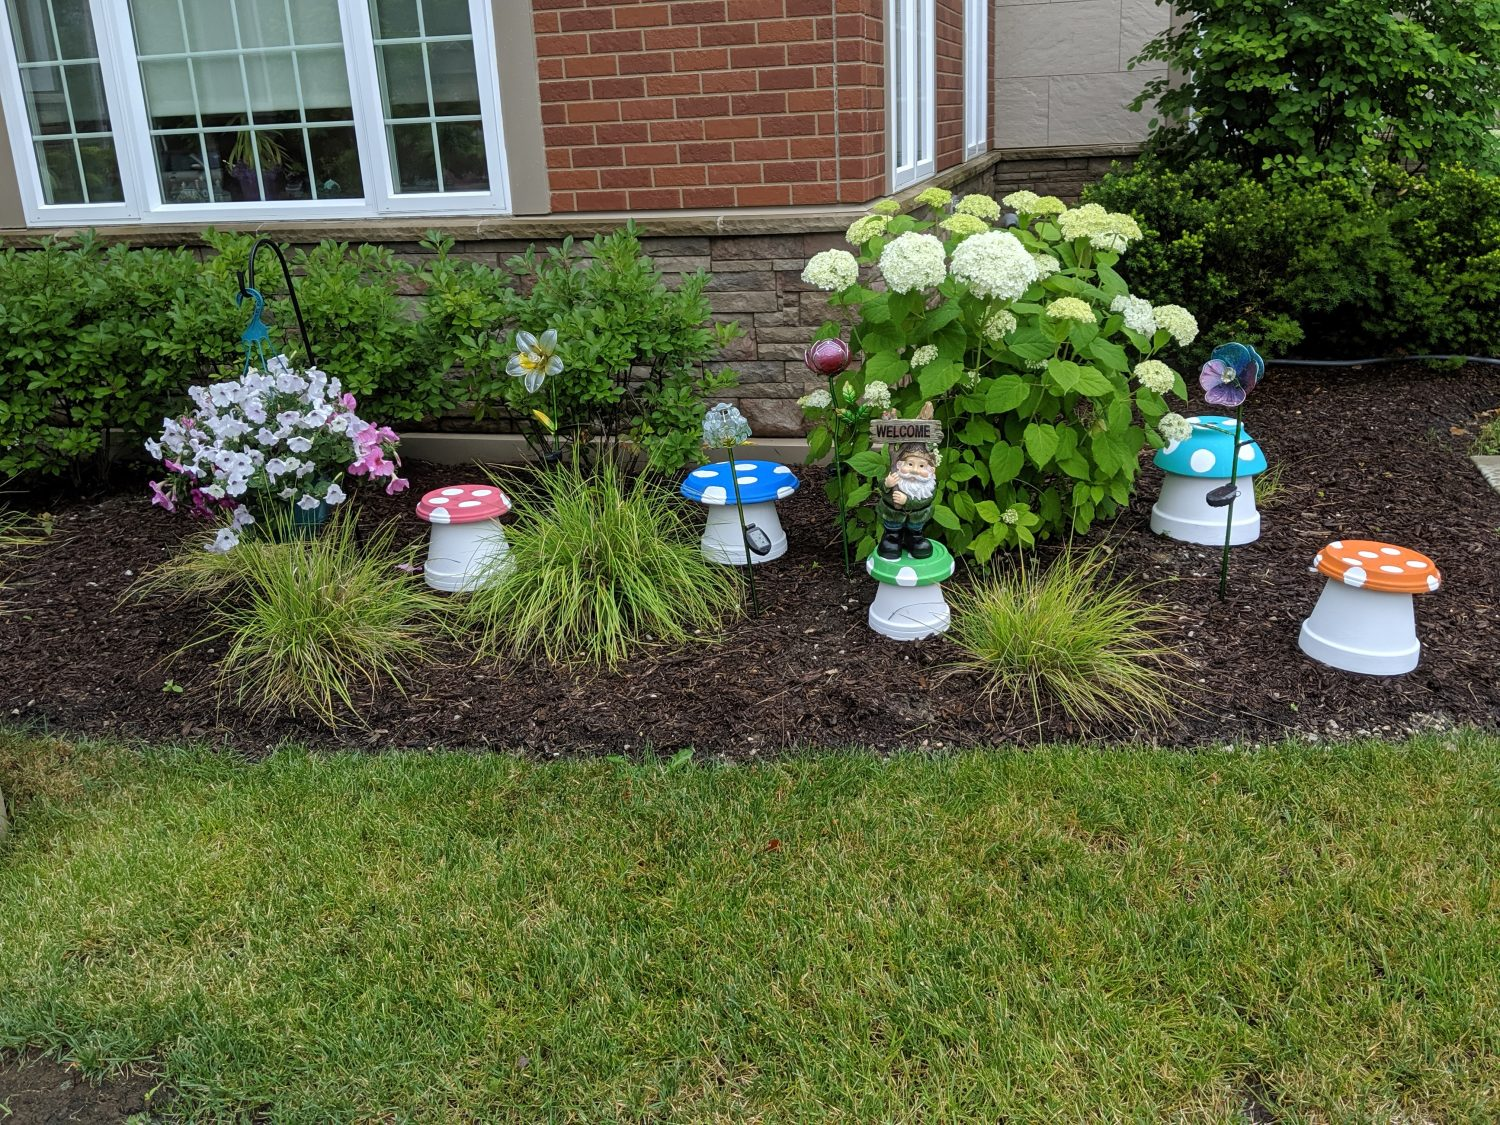 Residents Put Their Stamp on Beautification Project